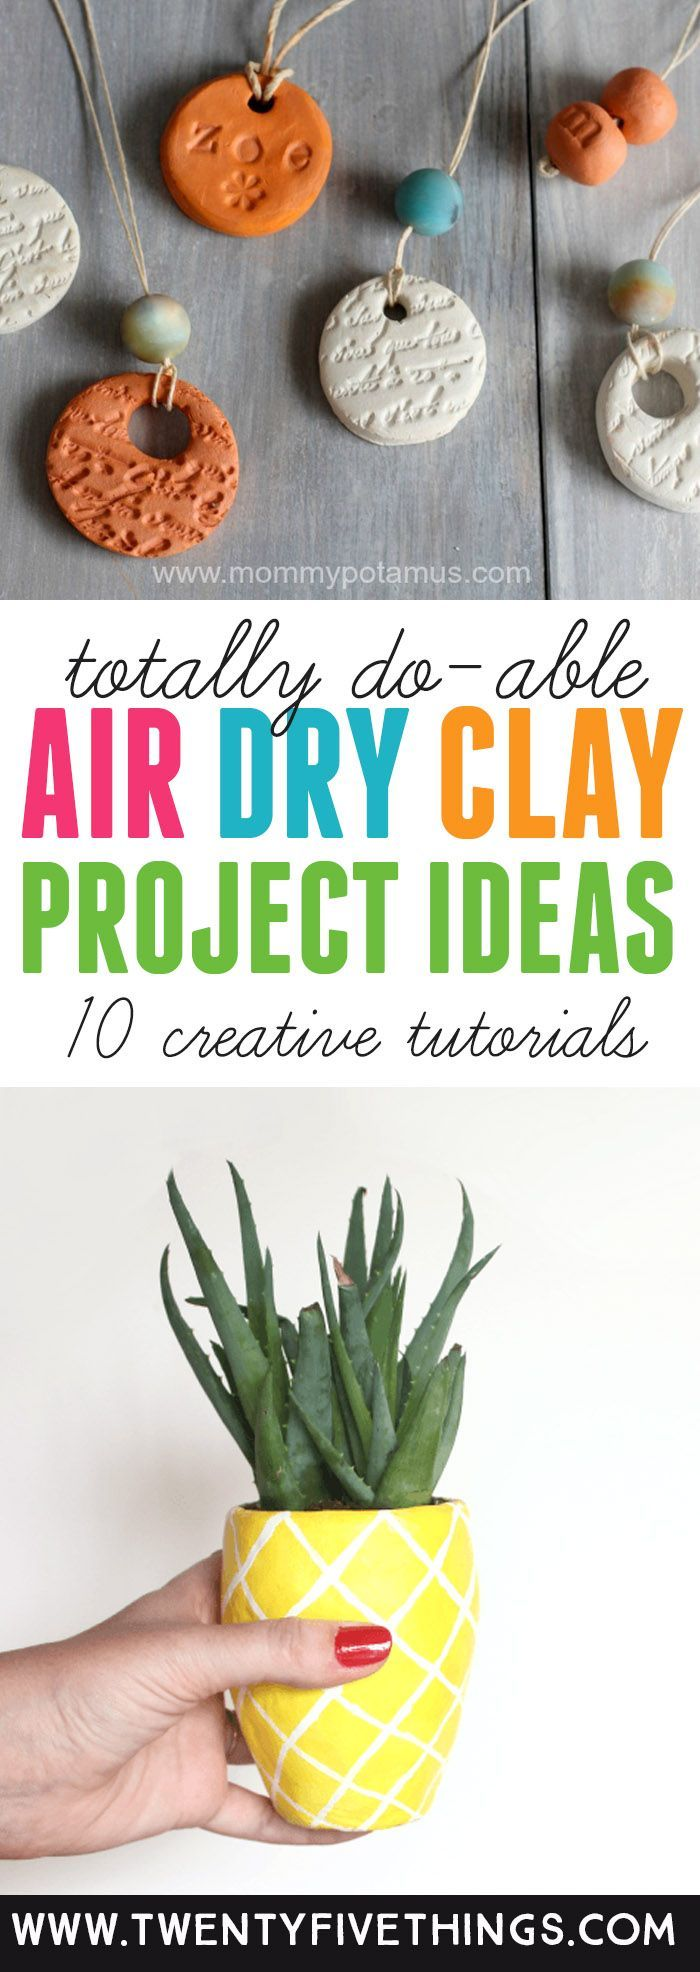 10 Things to Make with Air Dry Clay Fun and Beautiful